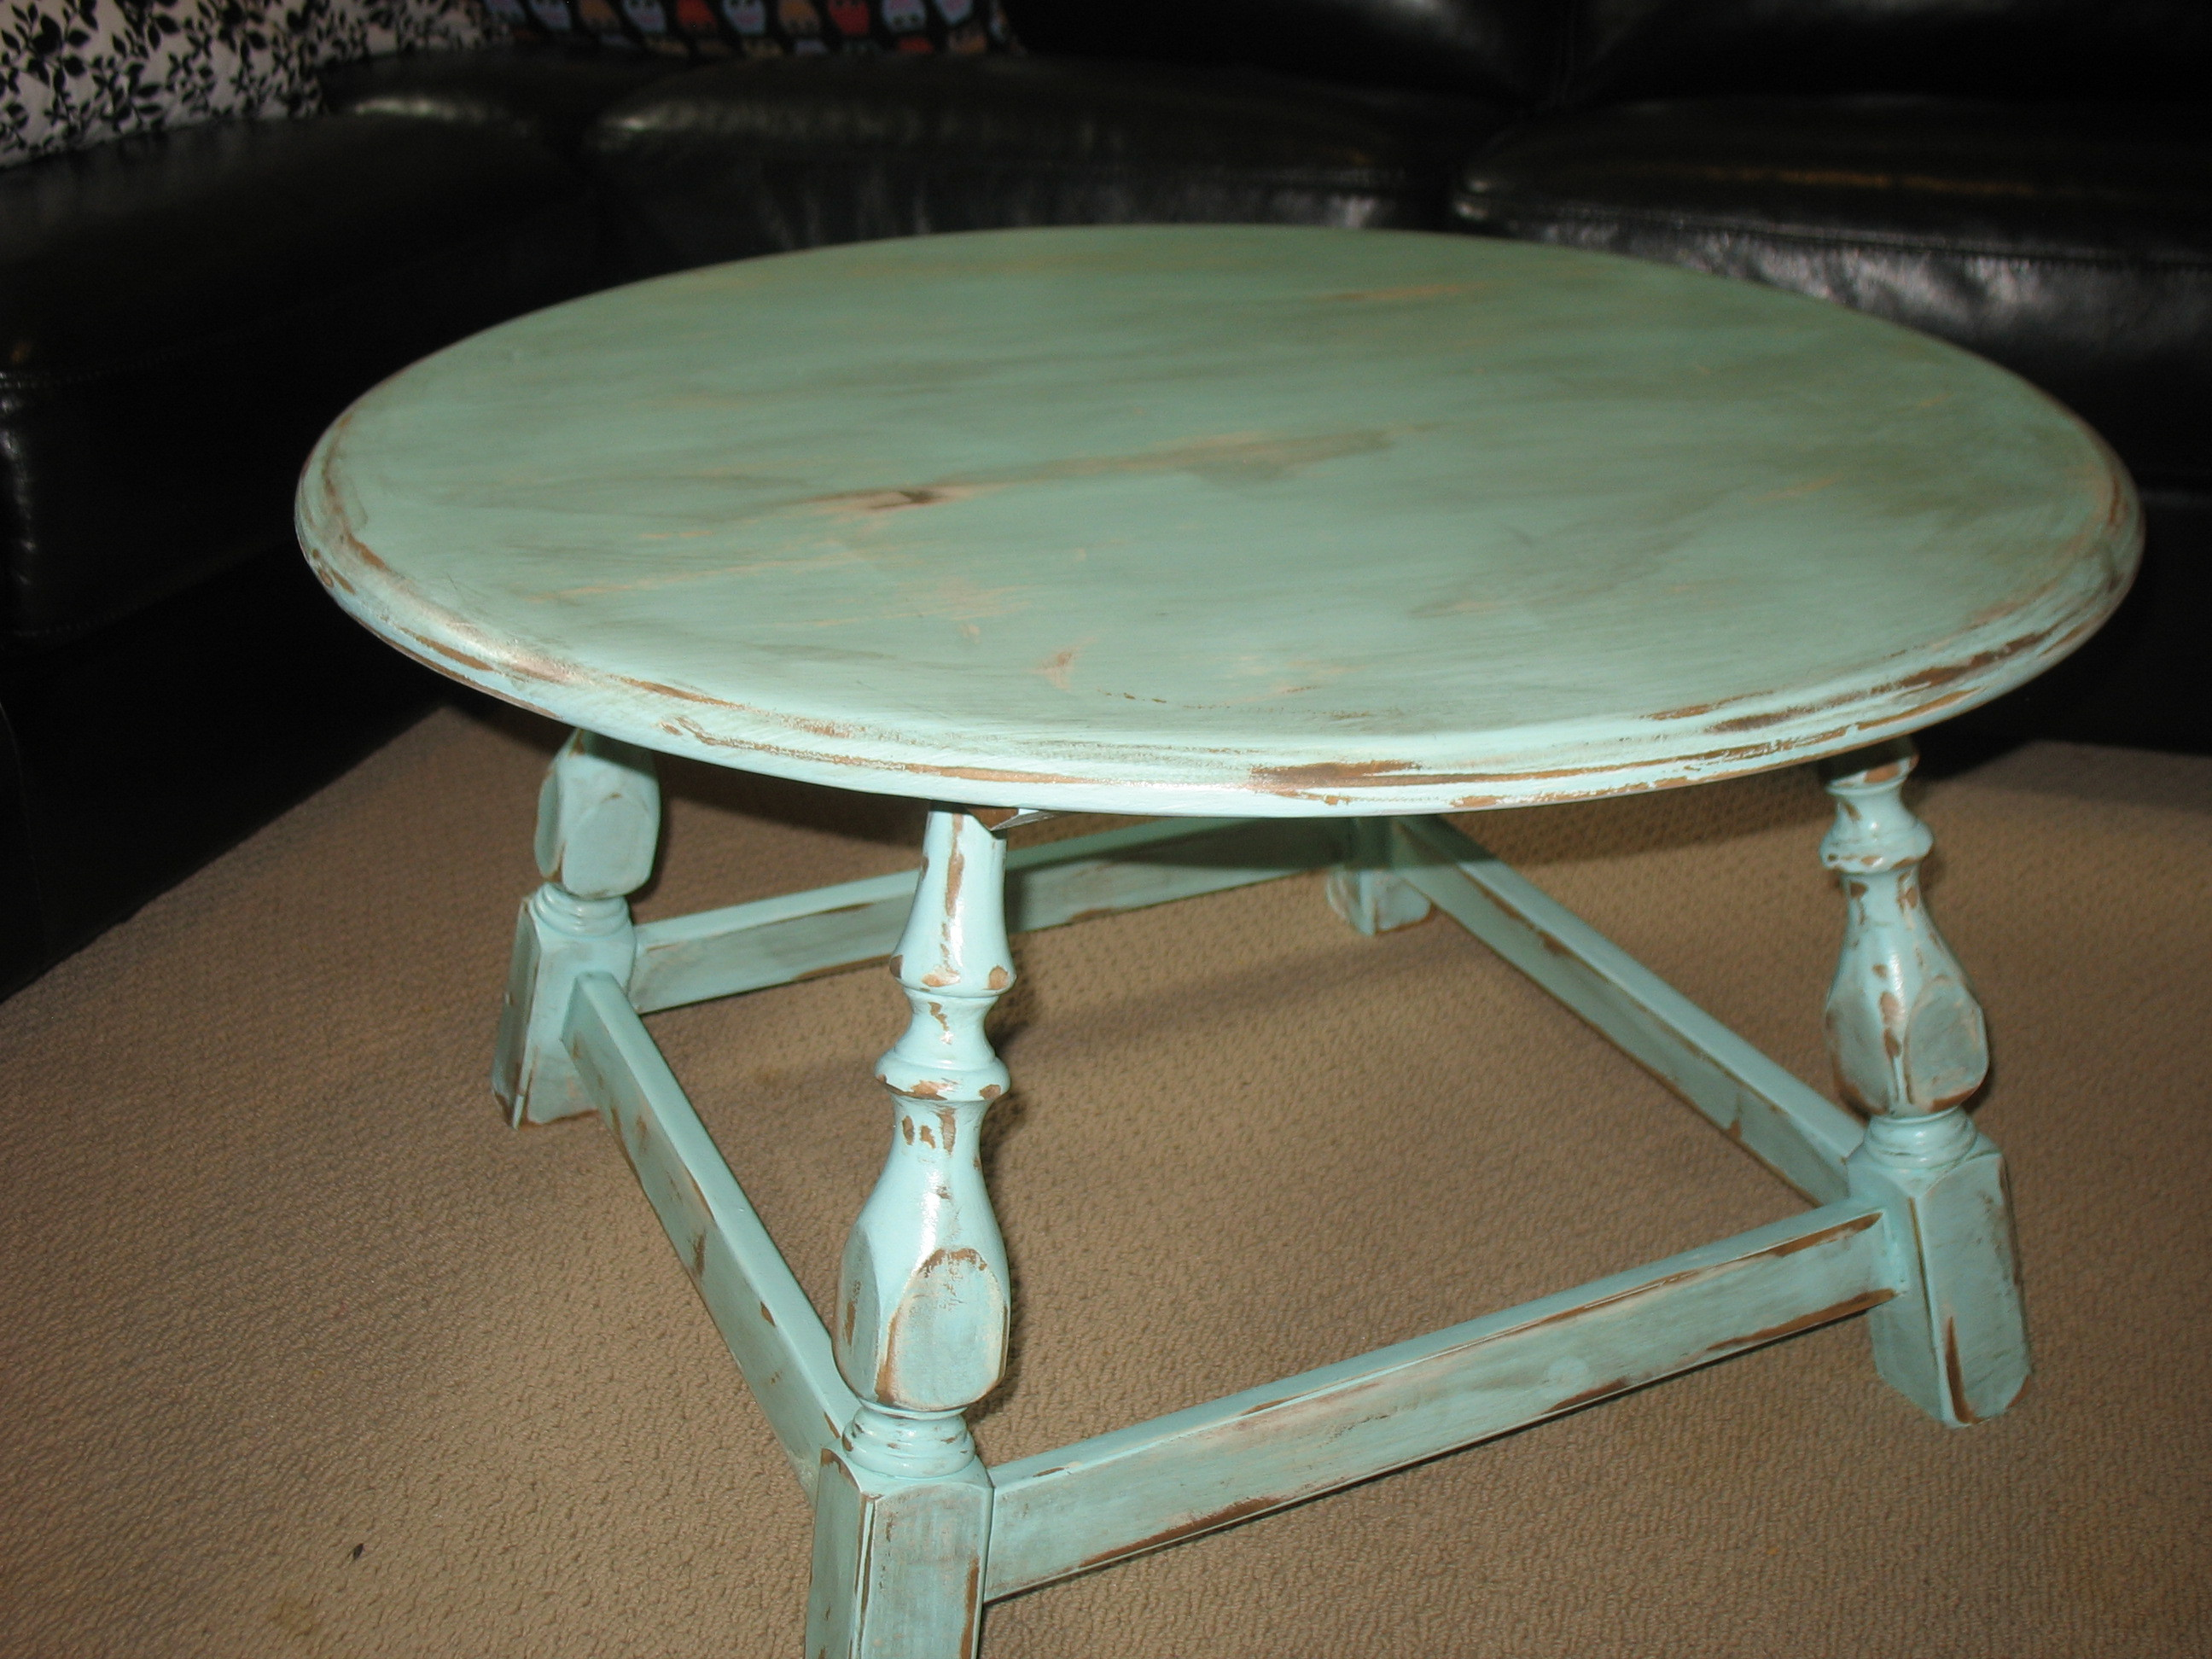 Distressed coffee table design images photos pictures Round coffee tables